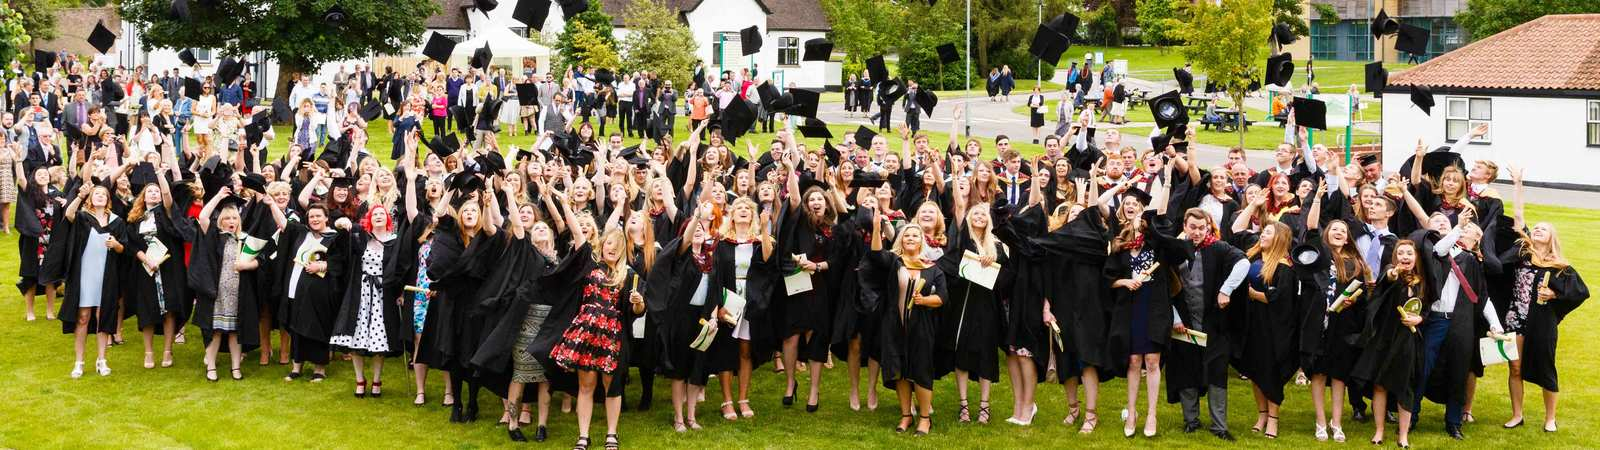 Degree courses at Bishop Burton College, East Yorkshire